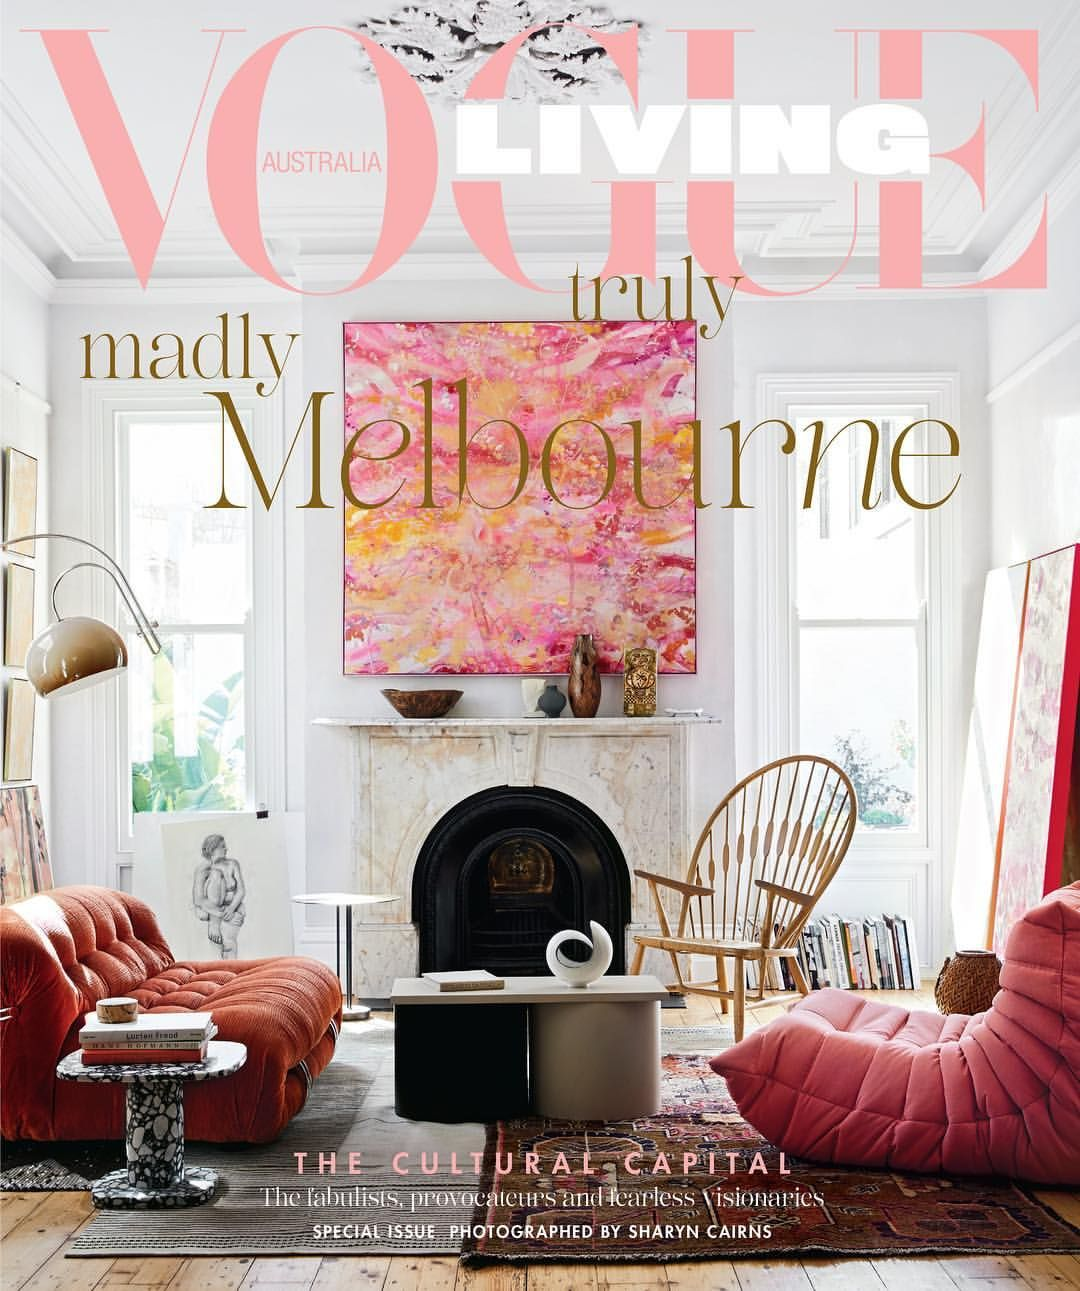 On sale today the novemberdecember issue of vogue living is a